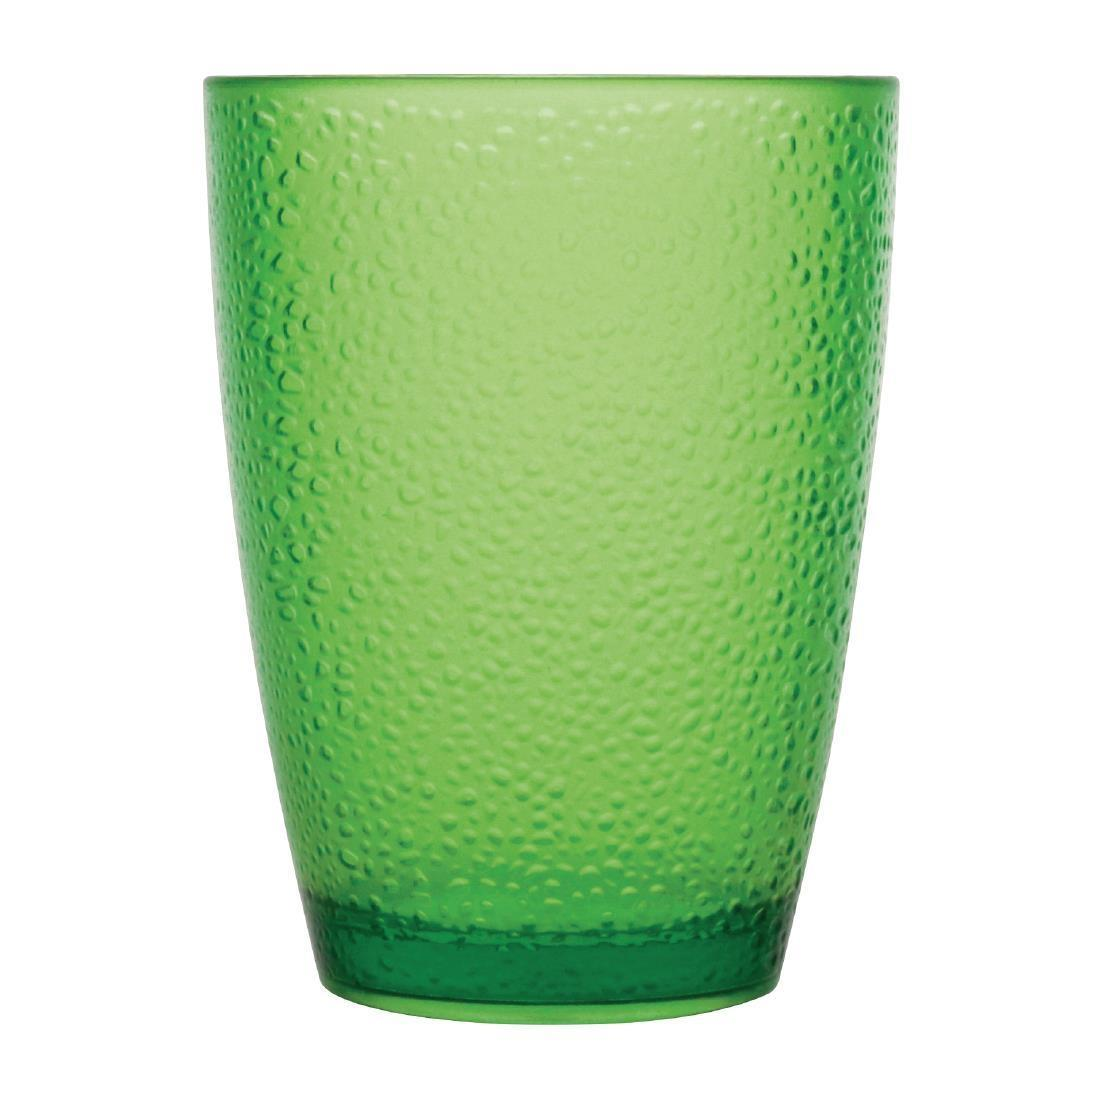 Kristallon Polycarbonate Tumbler Pebbled Green 275ml - Case 6 - DC930